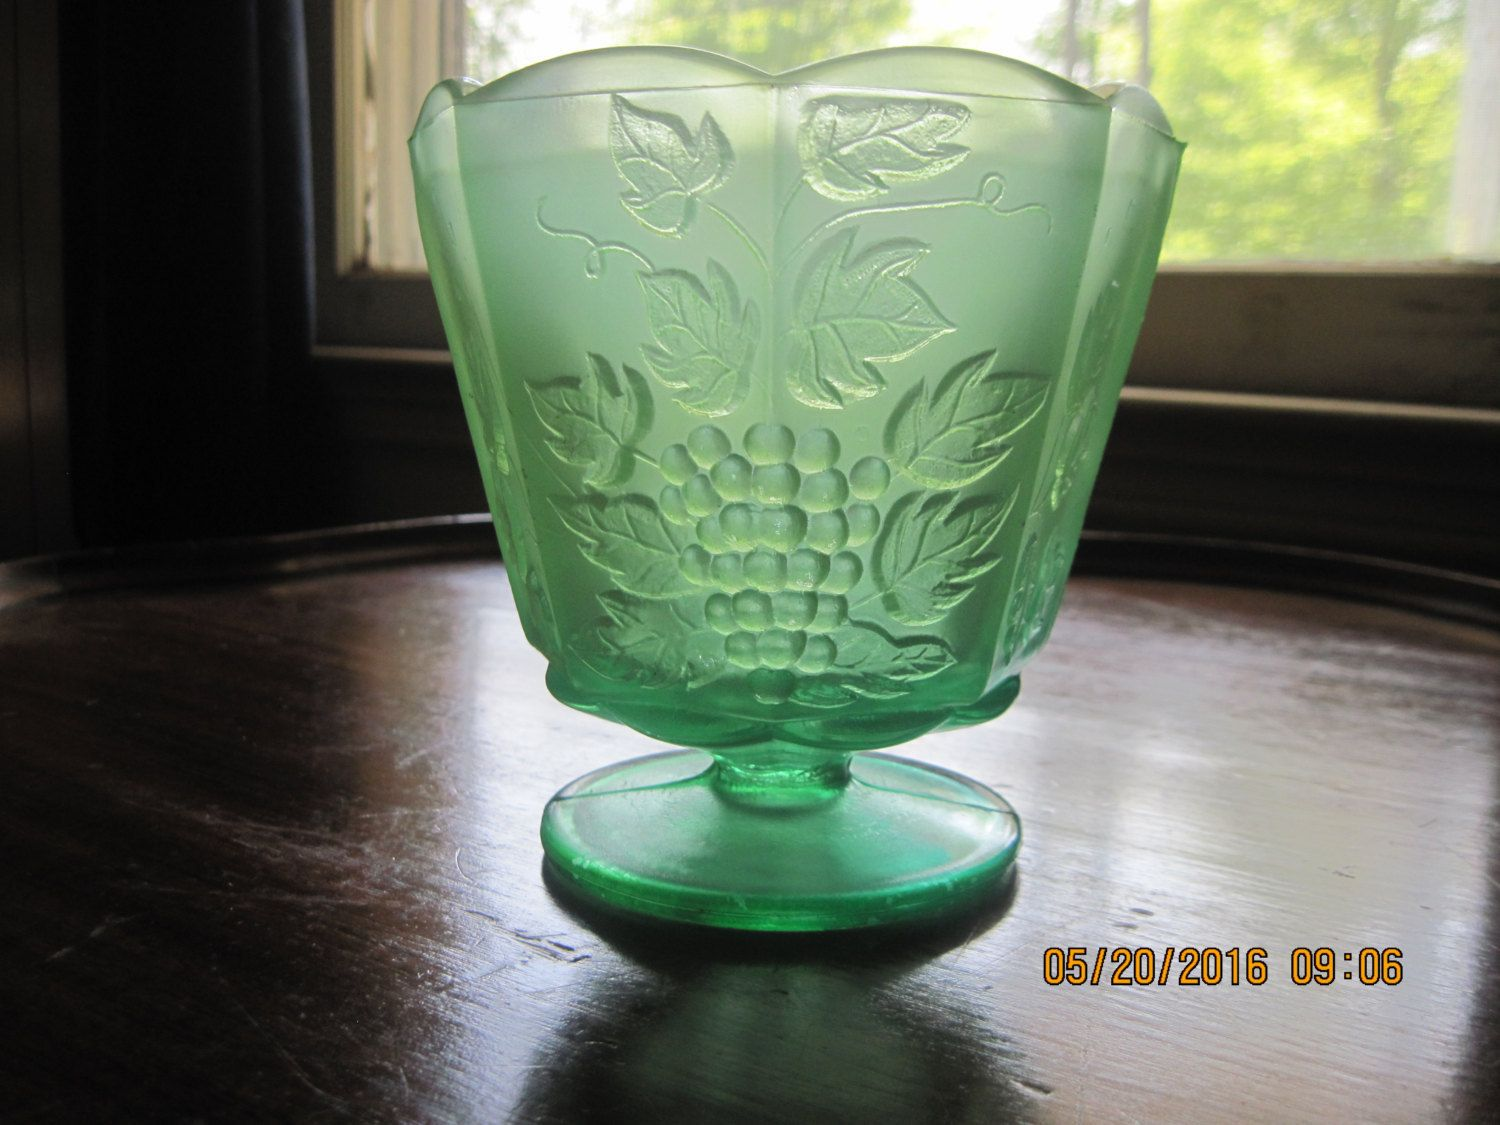 vintage light green pressed glass eight-sided footed vase and scalloped rim with ornate grape vines by craftycreationsbycw on Etsy